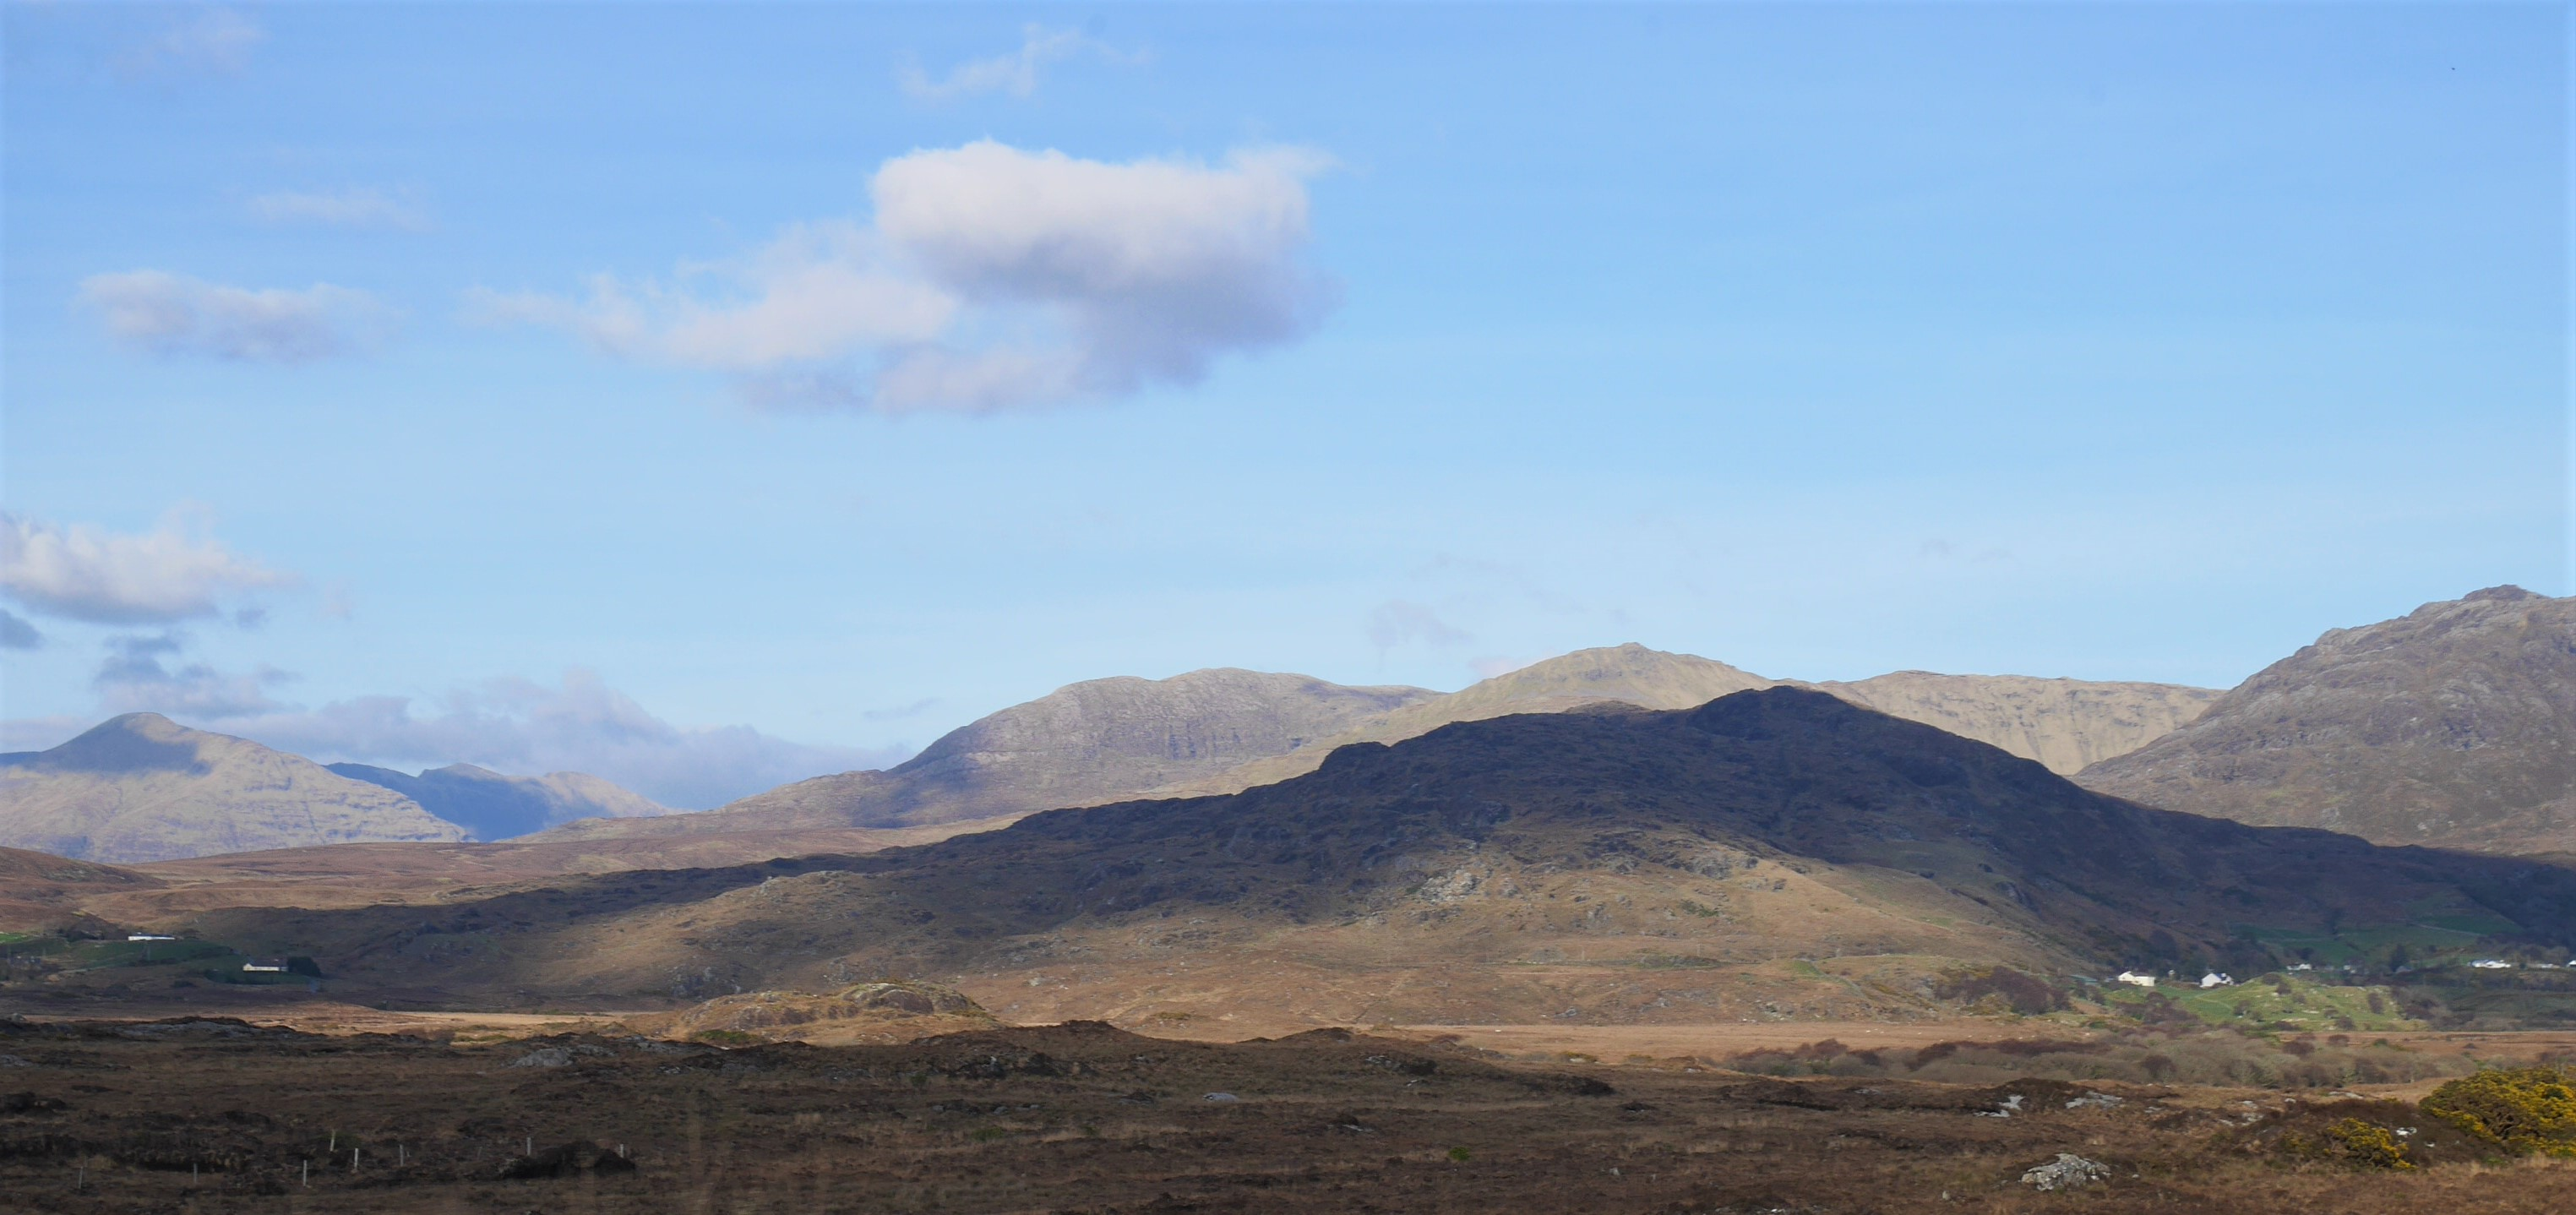 Benchoona, Garraun and Doughruagh in the background. Currywongaun is the hill in front.